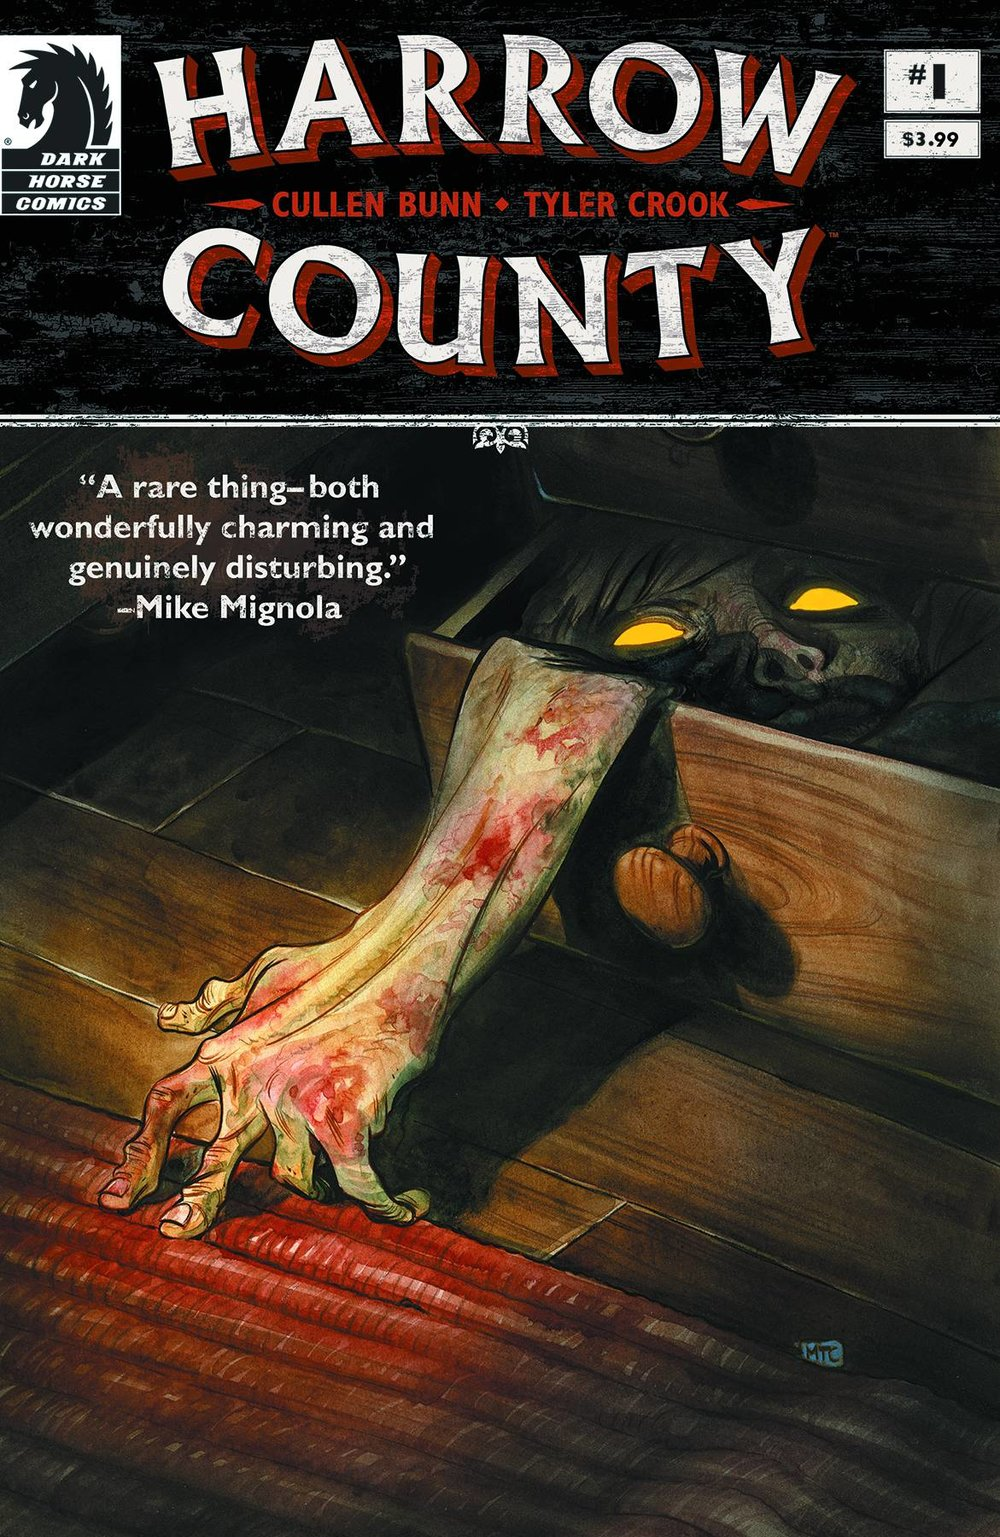 Harrow County by Cullen Bunn and Tyler Cook